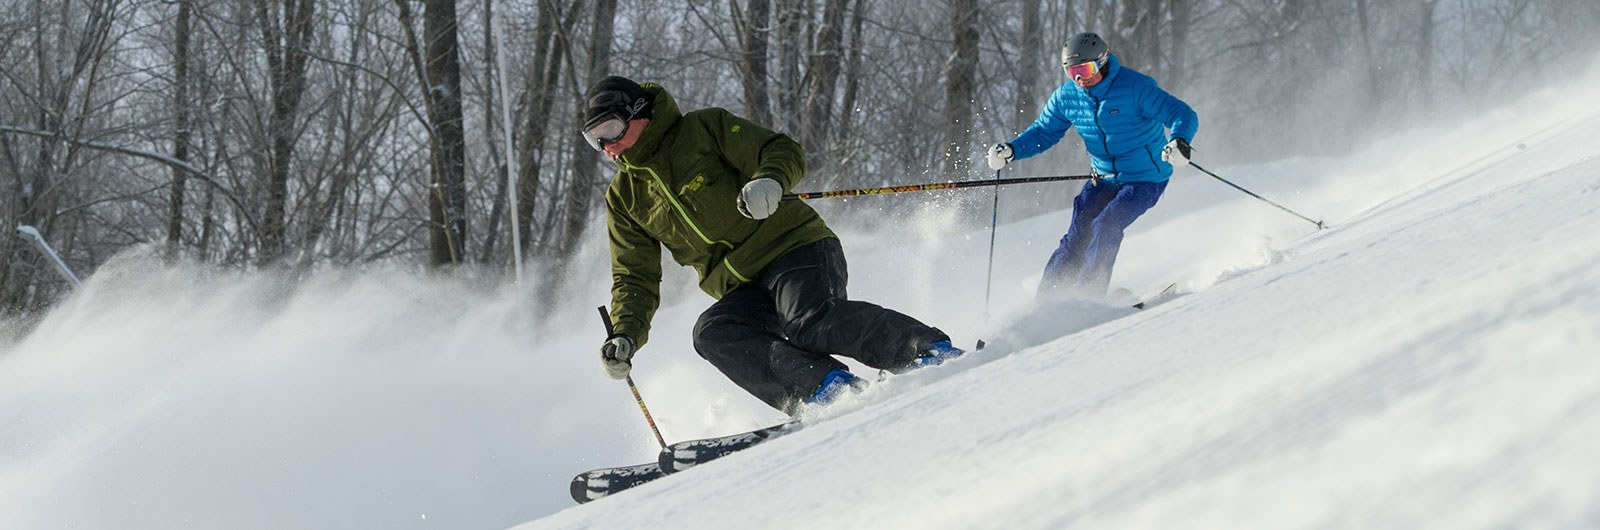 Two men skiing on a steep slope